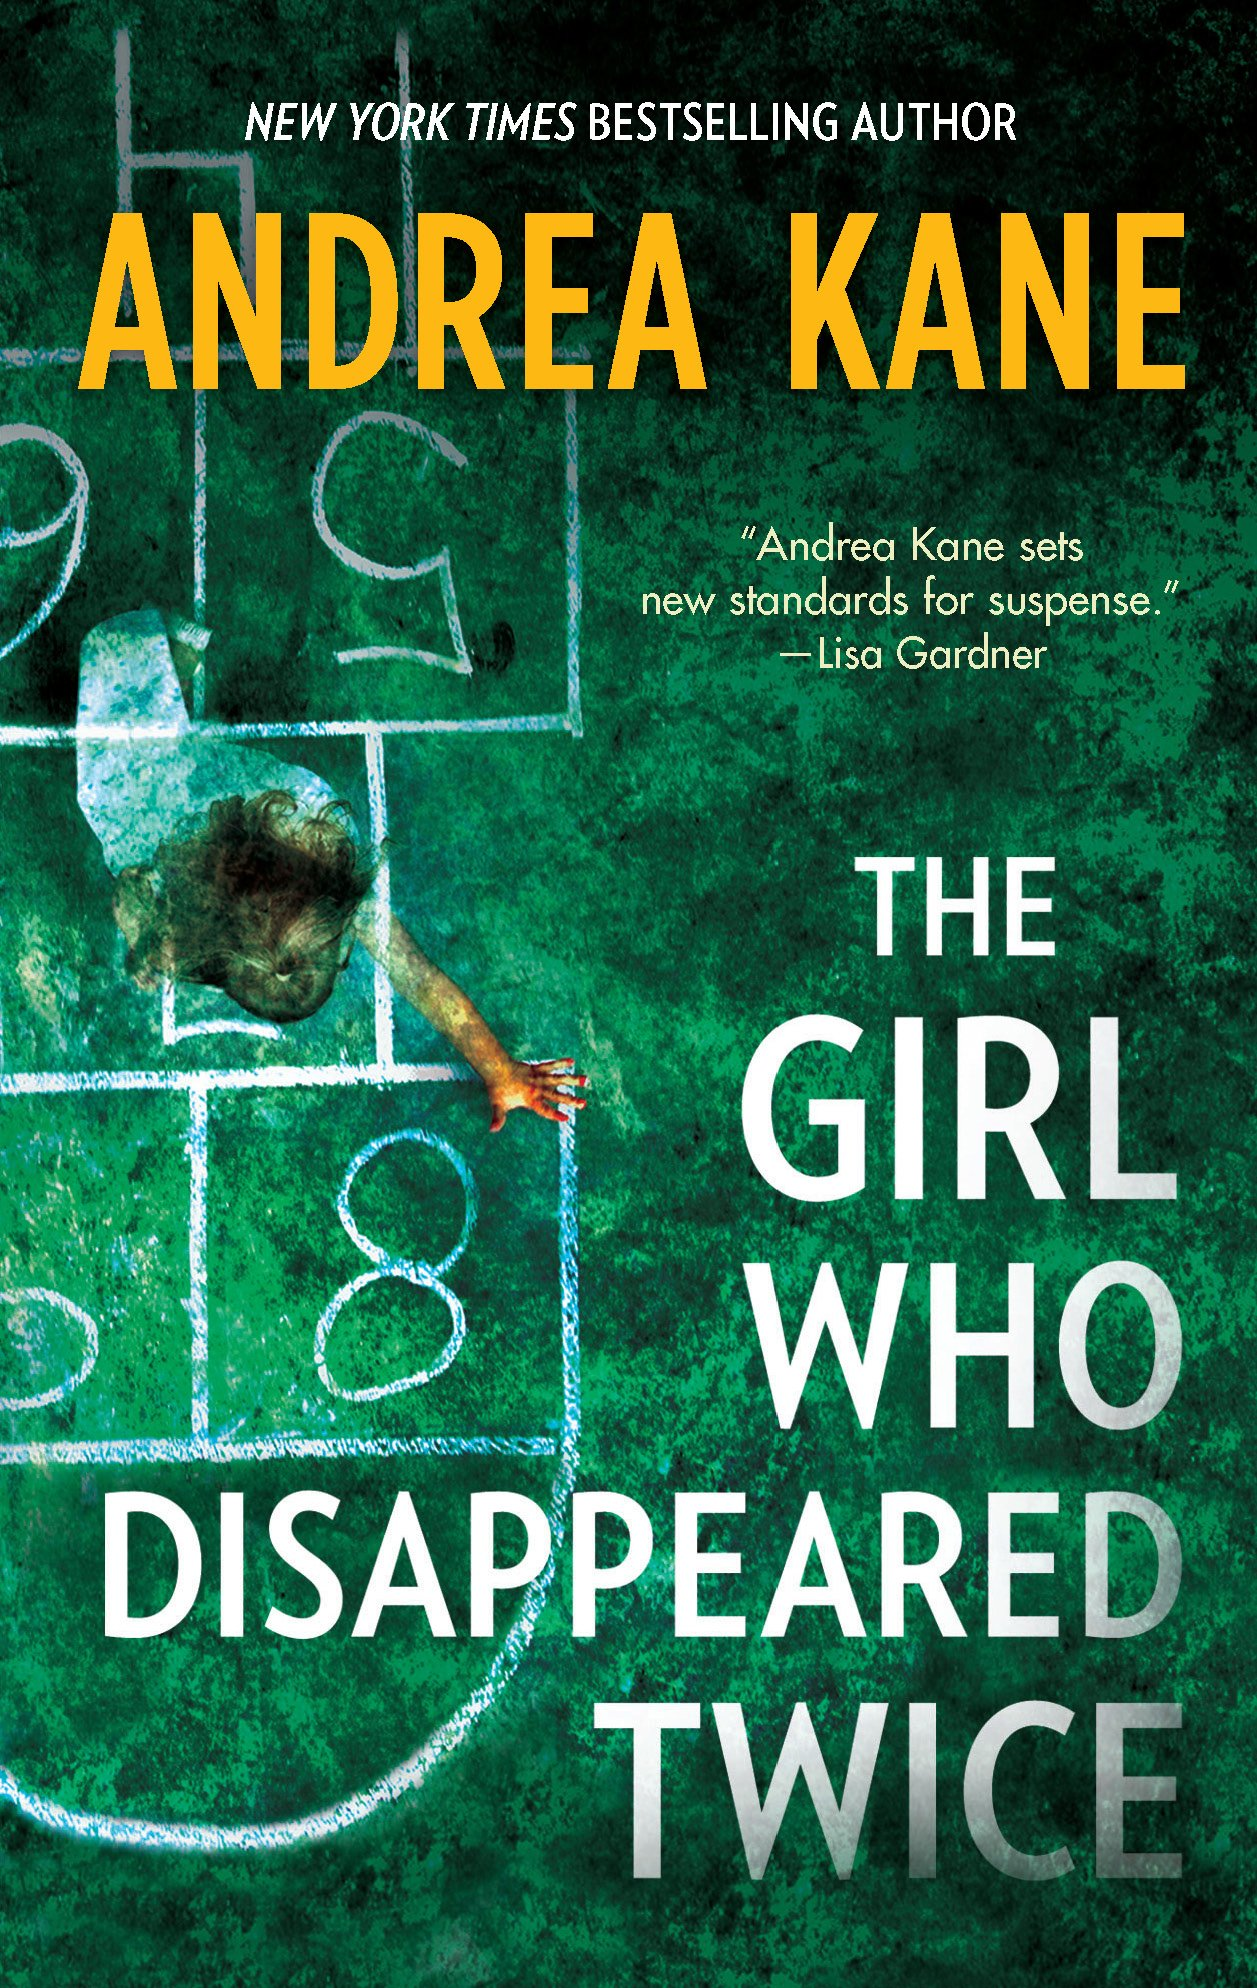 Andrea Kane – The Girl Who Disappeared